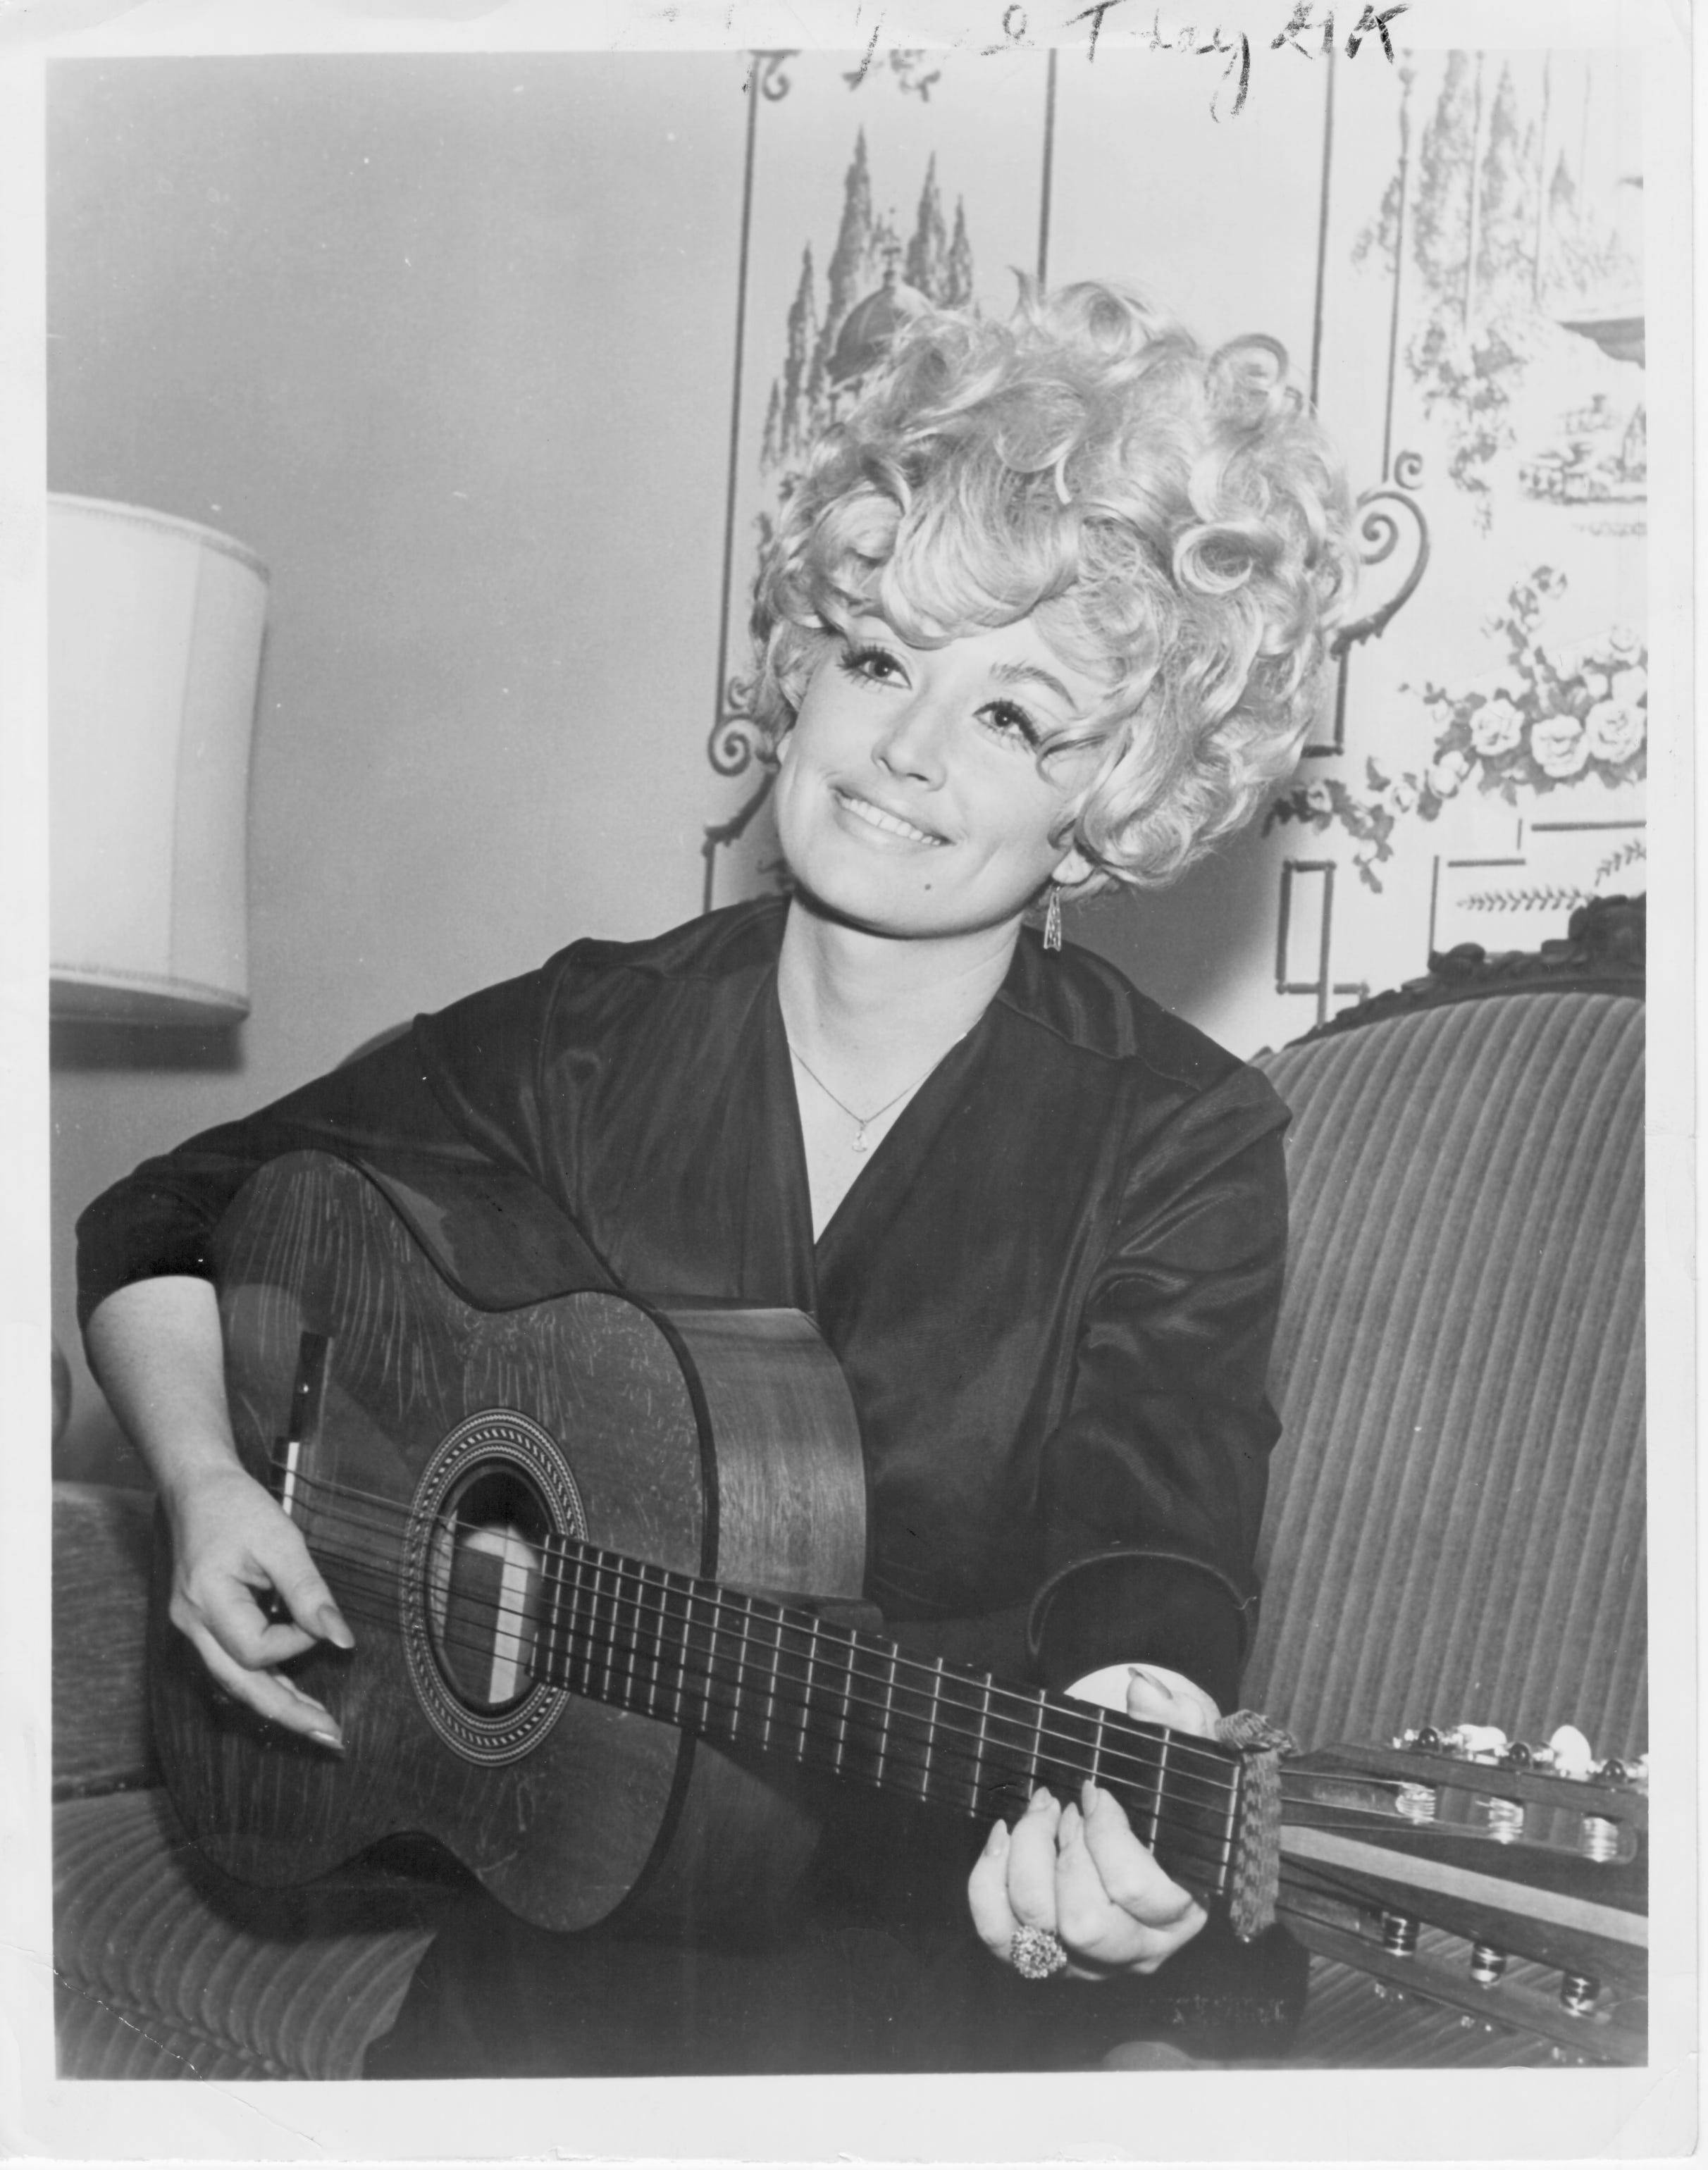 Dolly Parton, seen in 1970, says her uncle taught her the chords on the guitar.